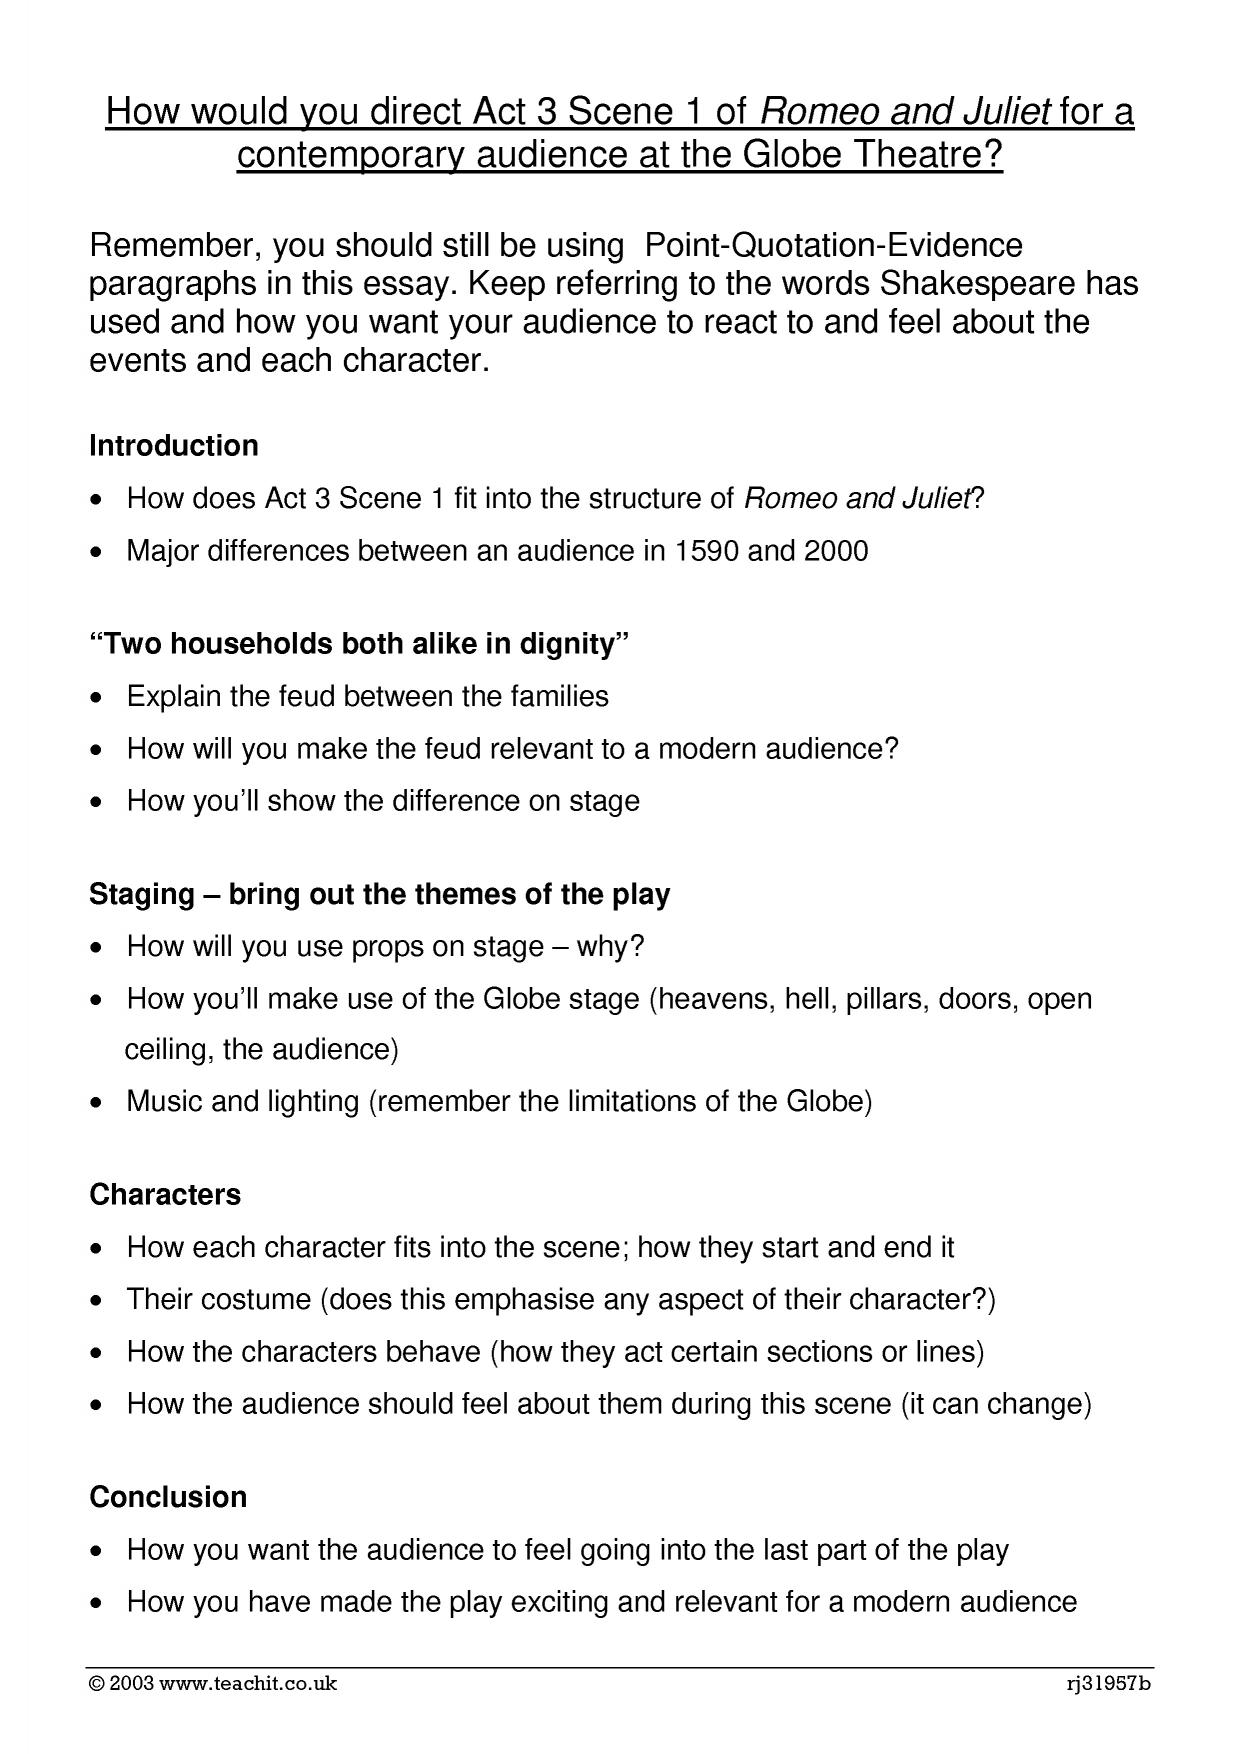 romeo and juliet essay plan act scene  romeo and juliet essay plan act 3 scene 1